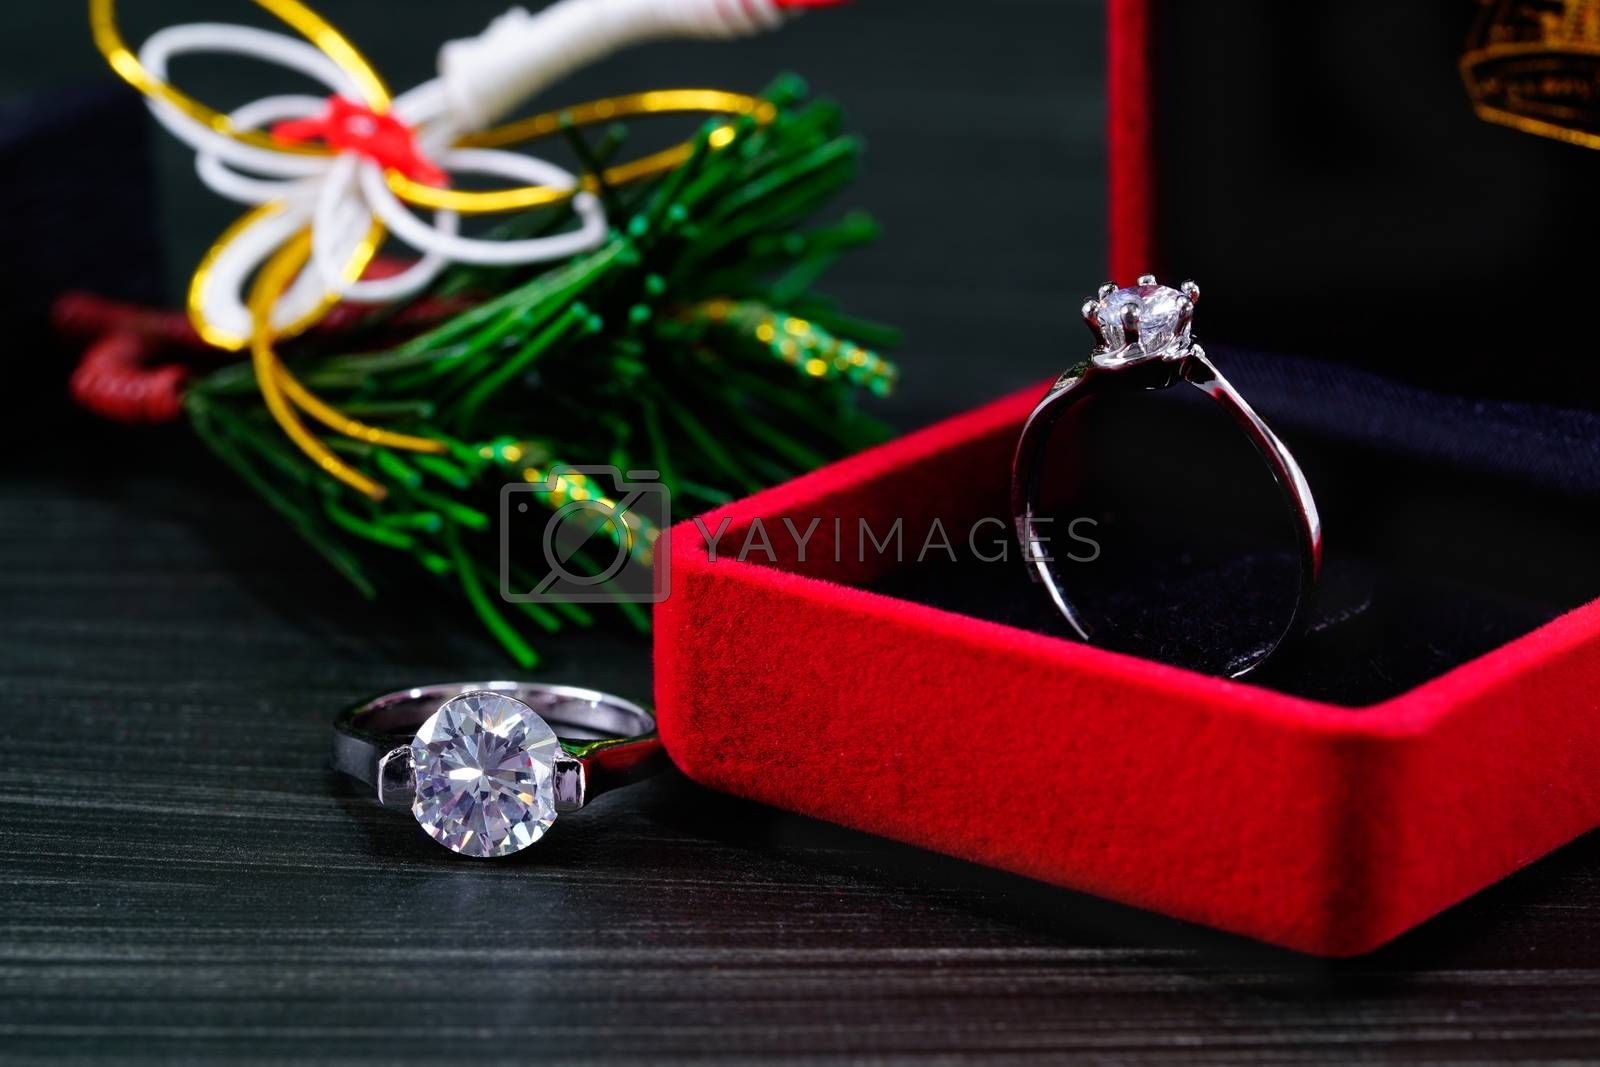 Diamond ring in red jewel box by stoonn